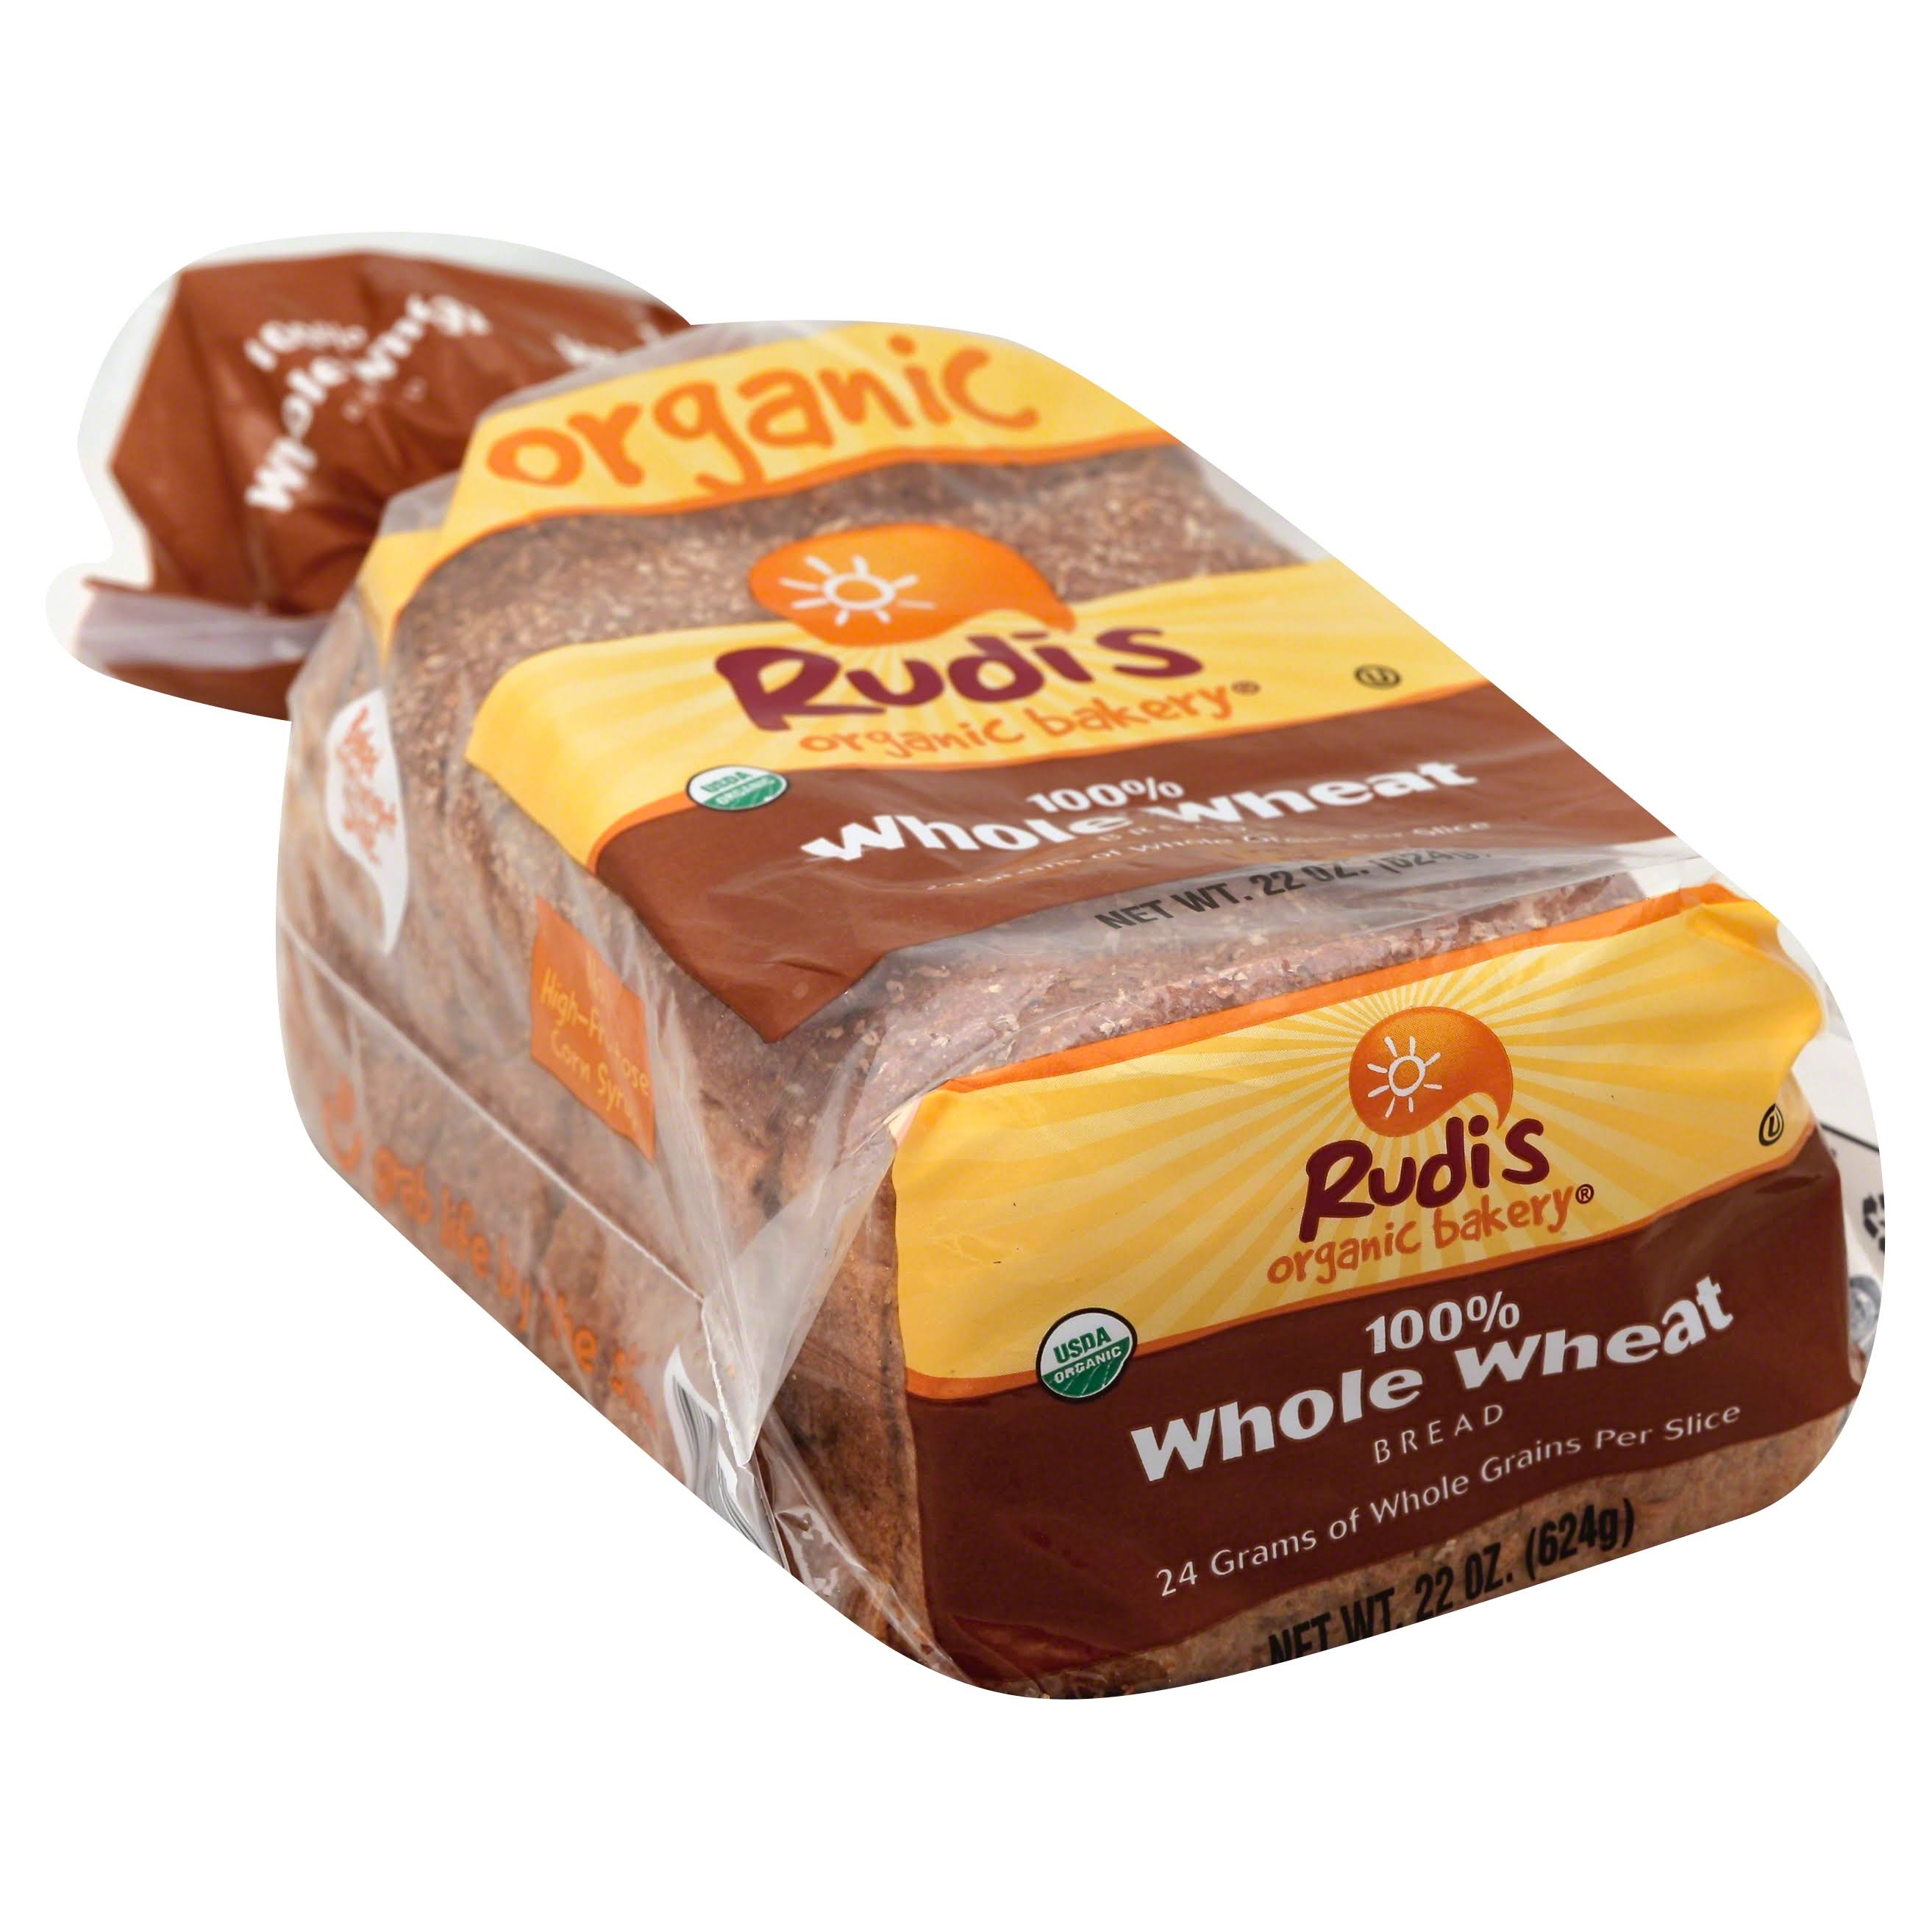 Rudi's Organic Bakery Bread - Whole Wheat, 22oz